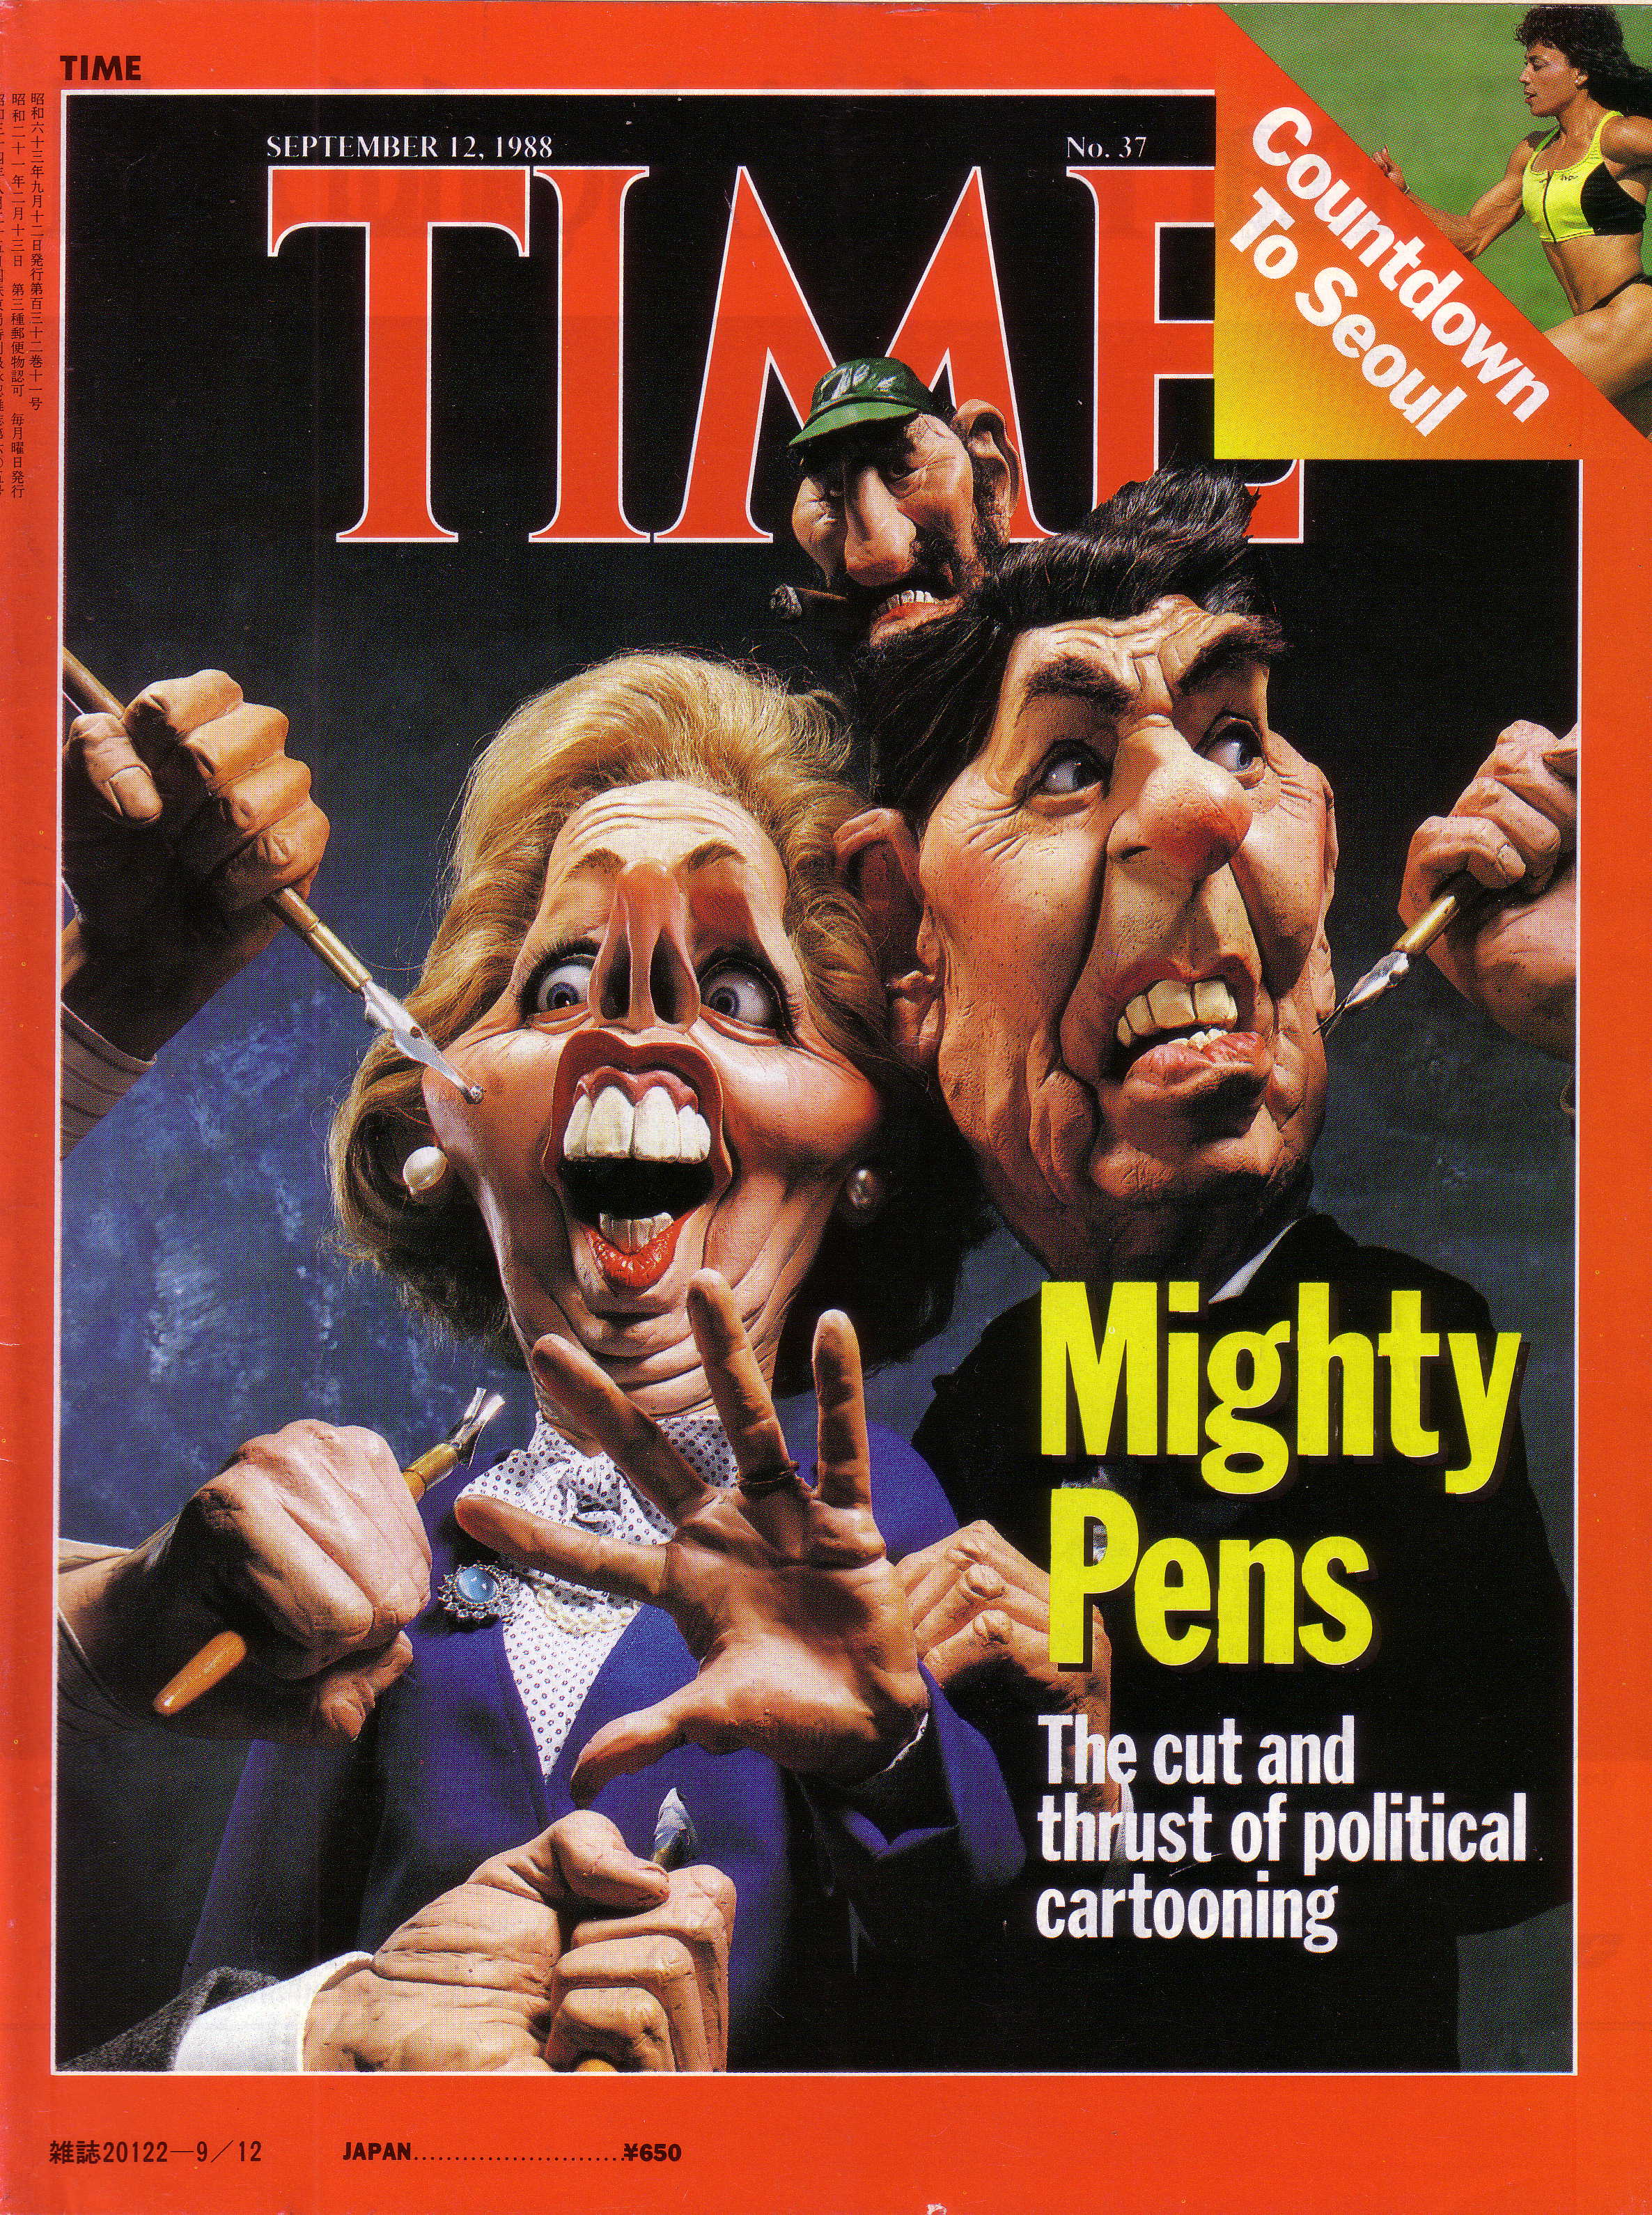 Thatcher and Reagan Time mag. cover 1988